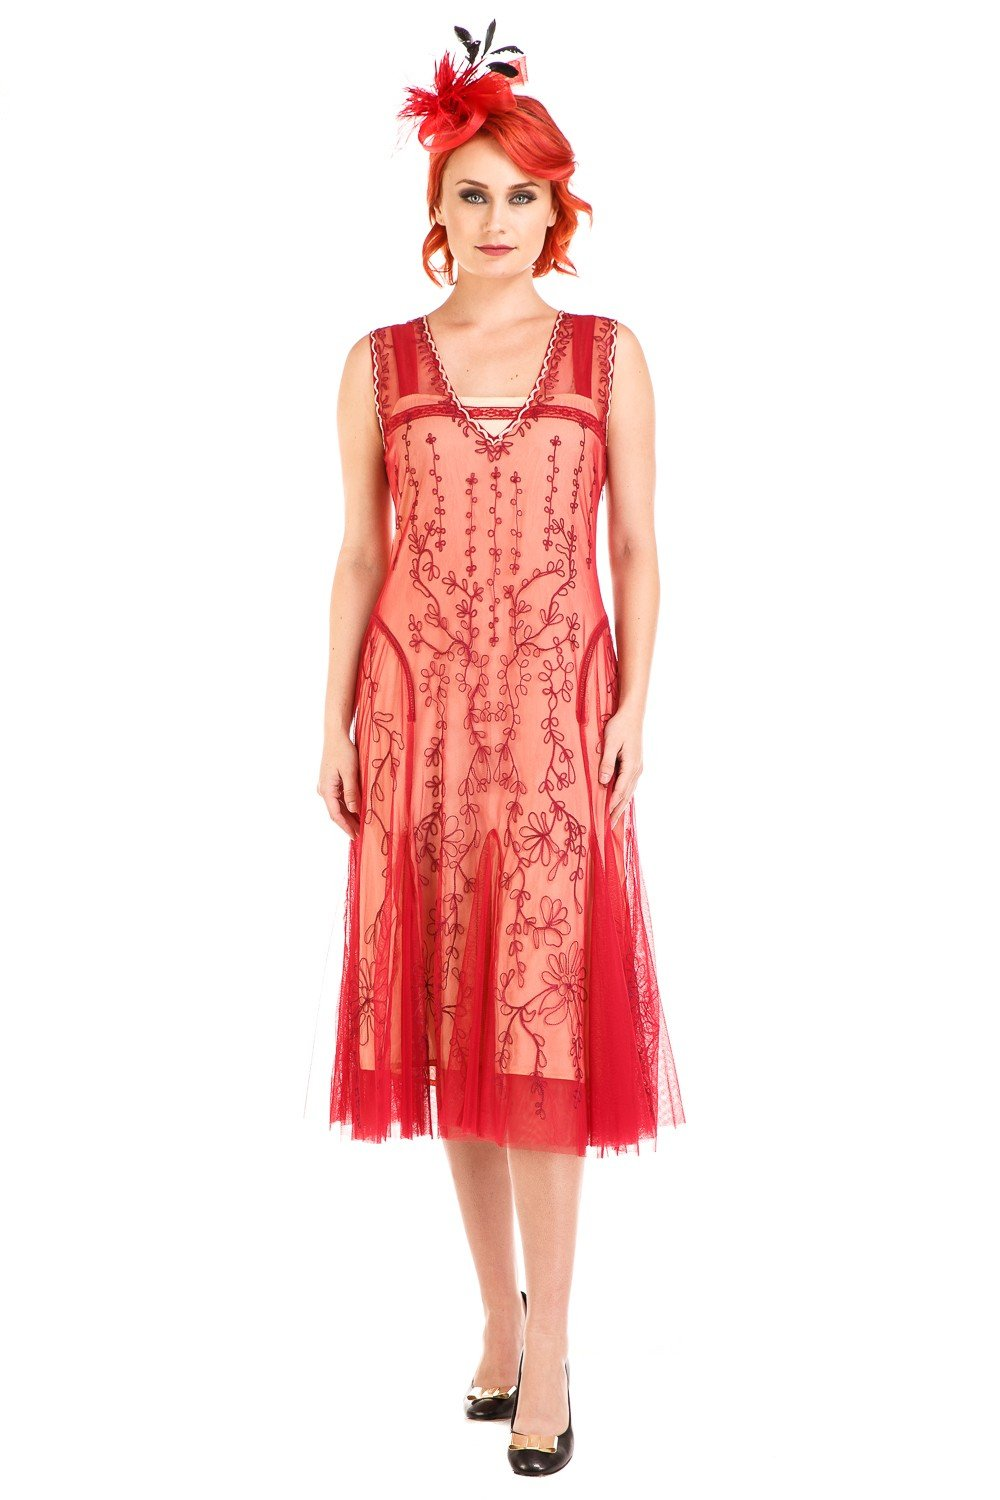 1920s Style Dresses, 20s Dresses Jackie 1920s Flapper Style Dress in Cherry by Nataya $208.00 AT vintagedancer.com